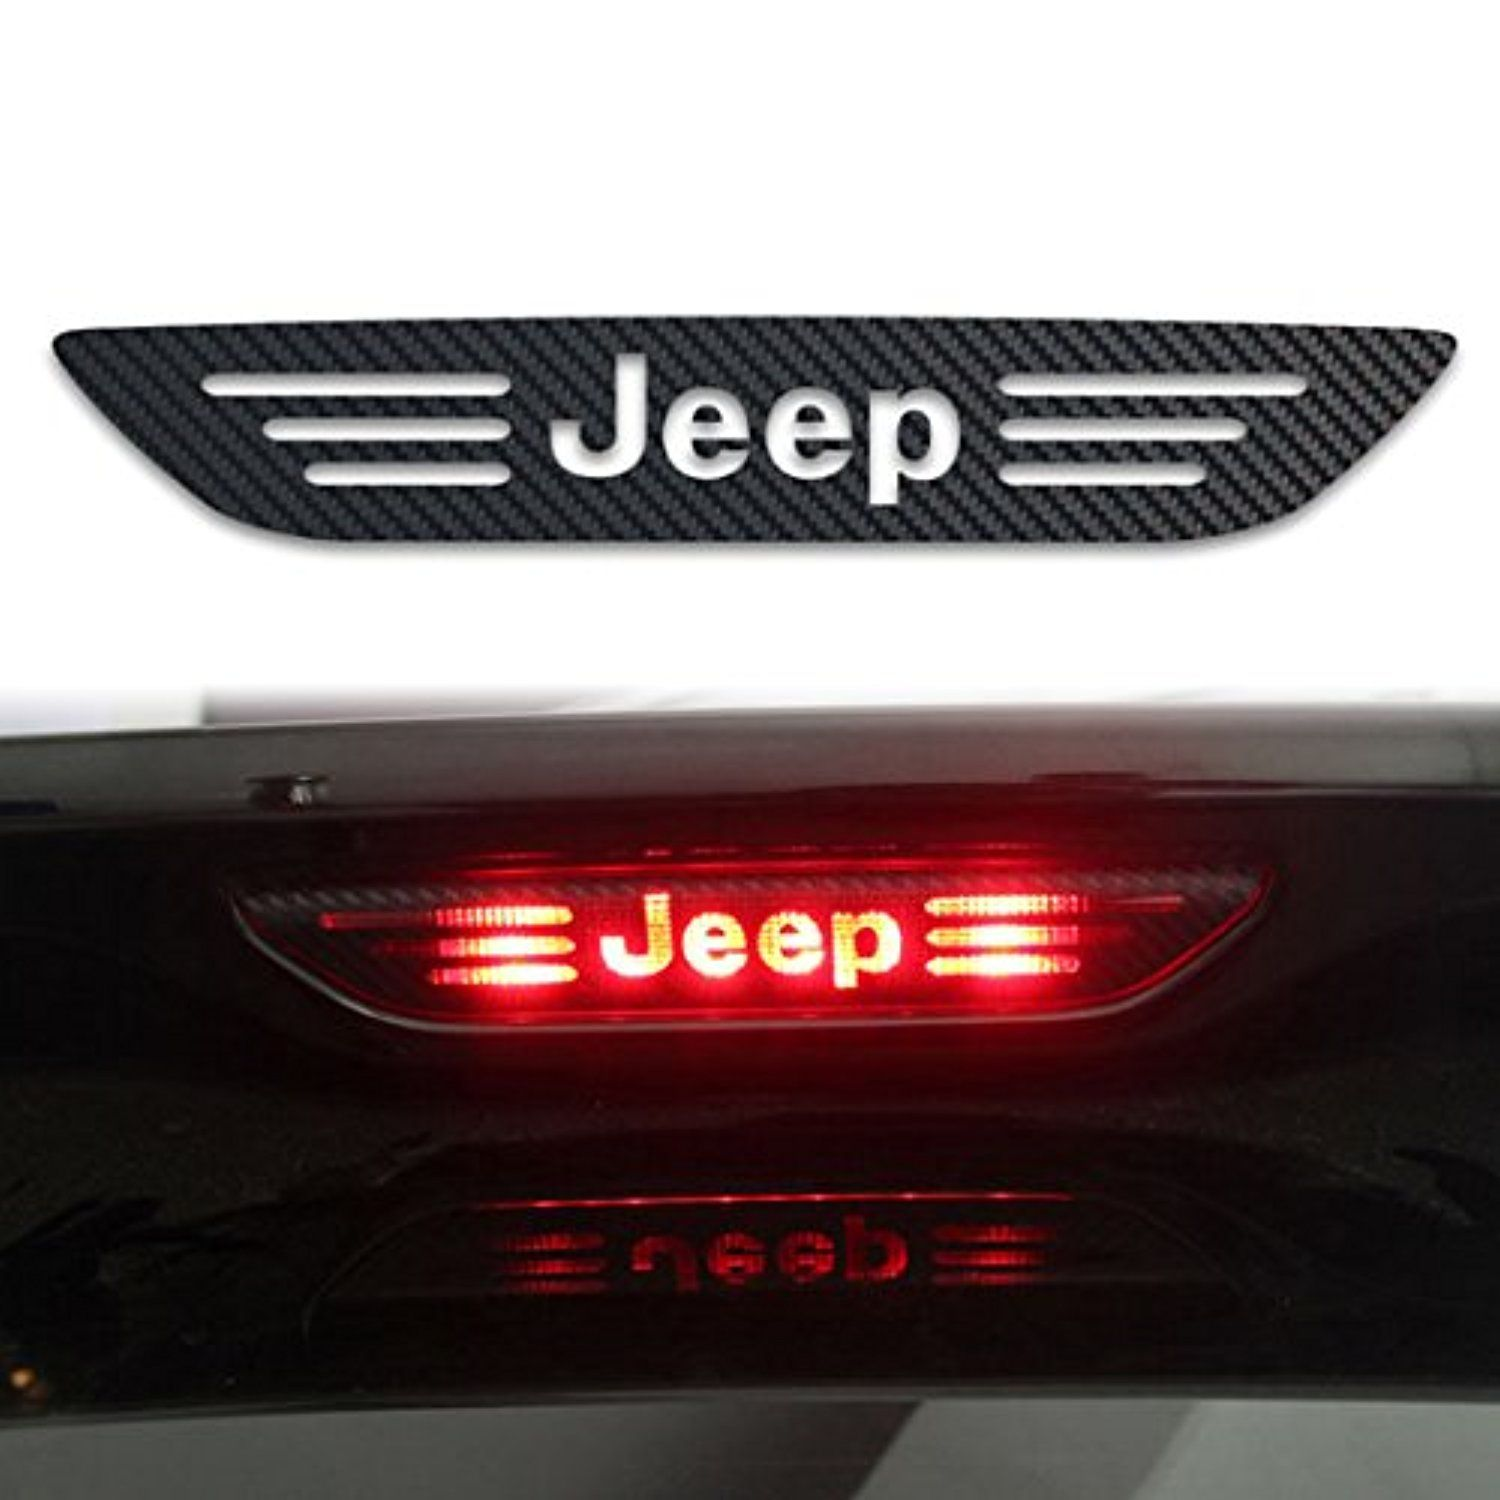 Jeep sticker tail light brake lamp decal carbon fiber sticker for jeep grand cherokee compass